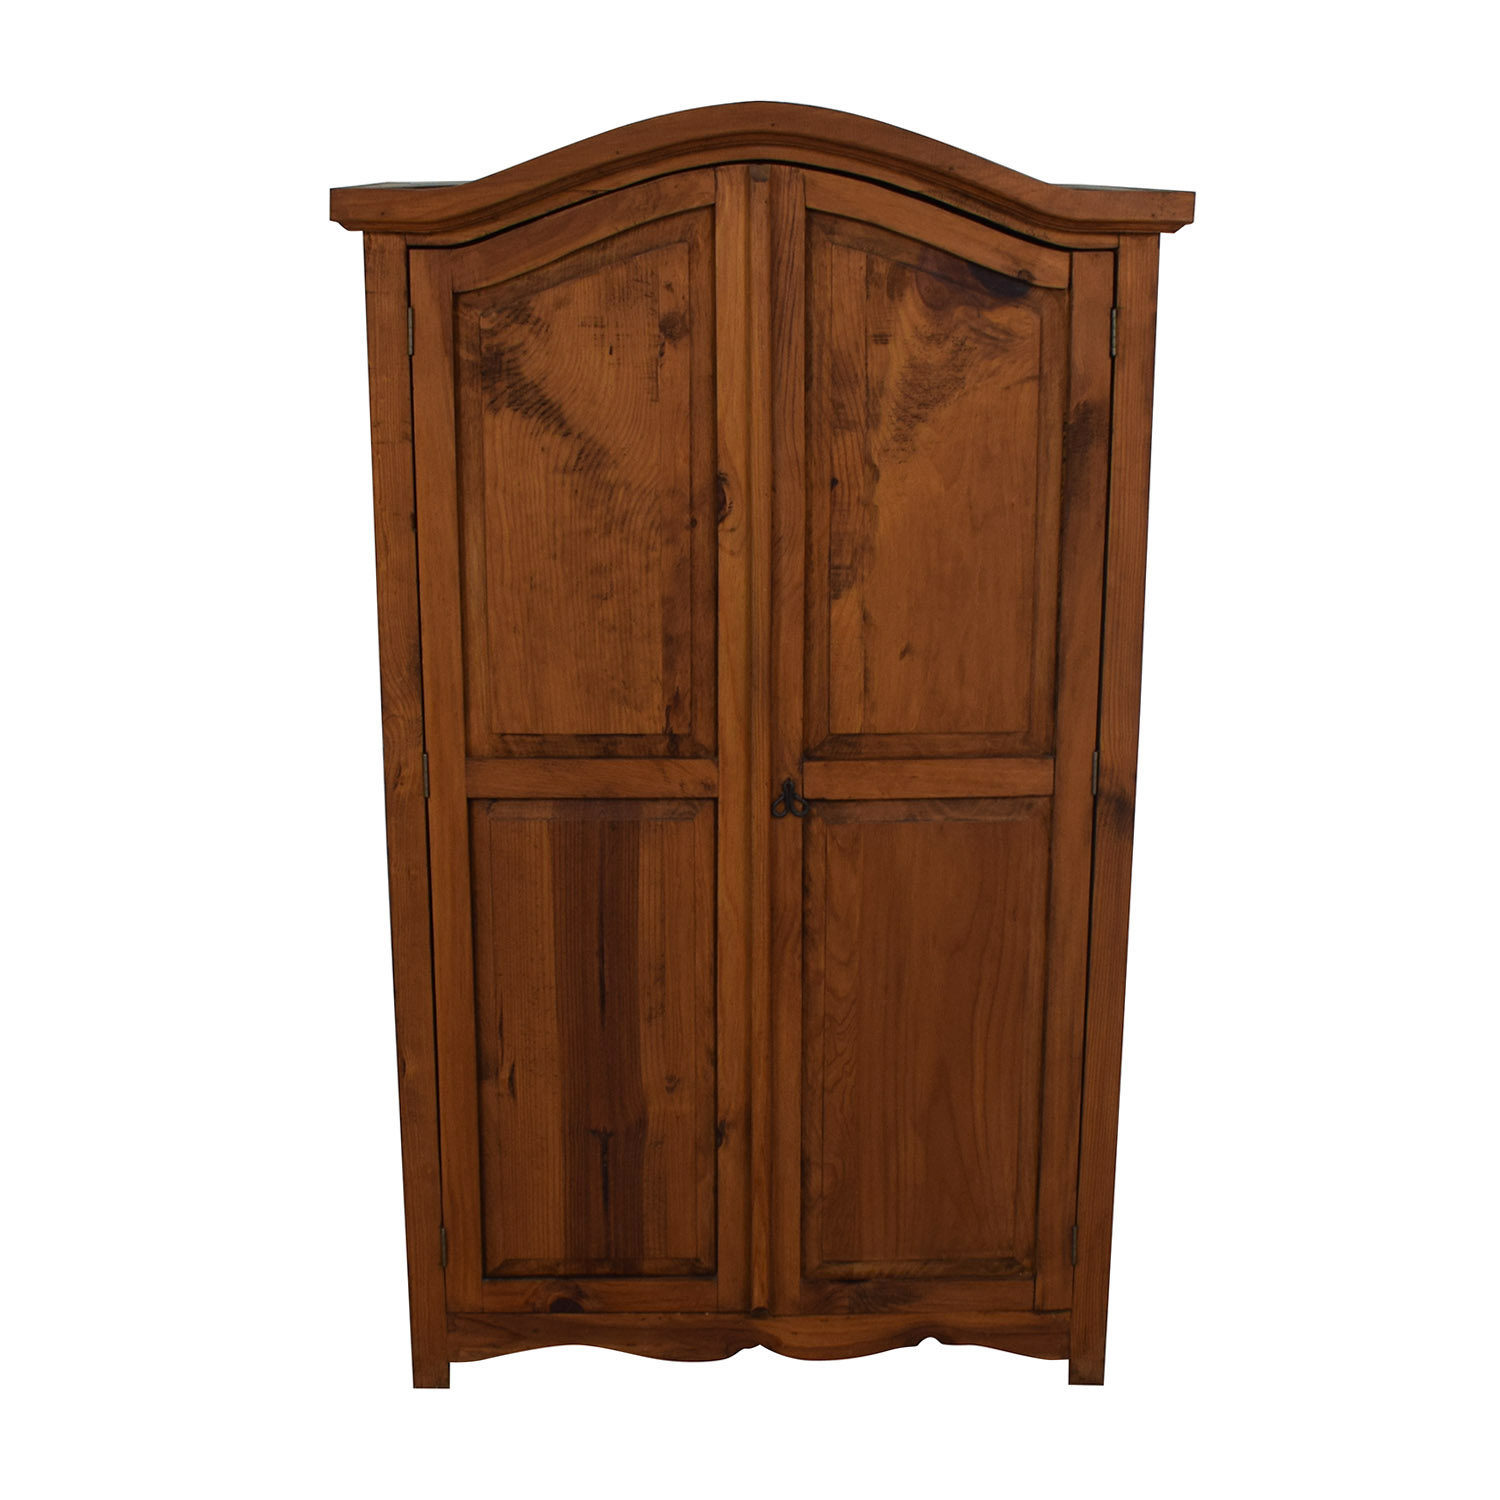 Dovetailed Wood Wardrobe Armoire on sale